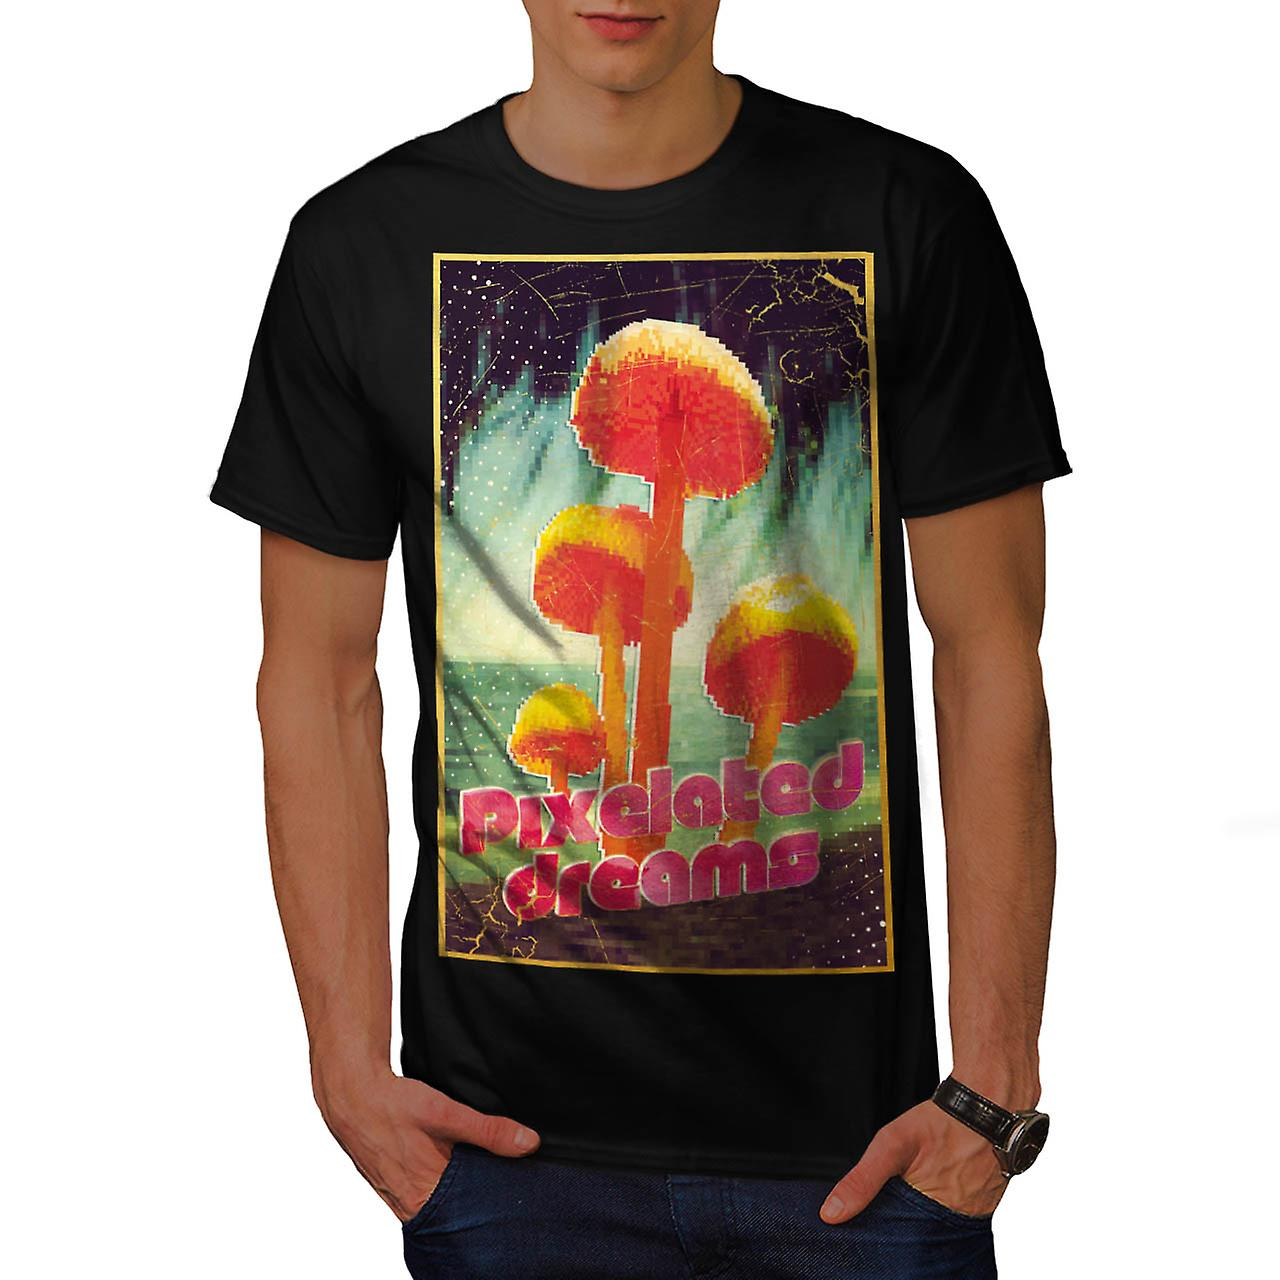 Pixelated Dreams Mushroom Fun Men Black T-shirt | Wellcoda